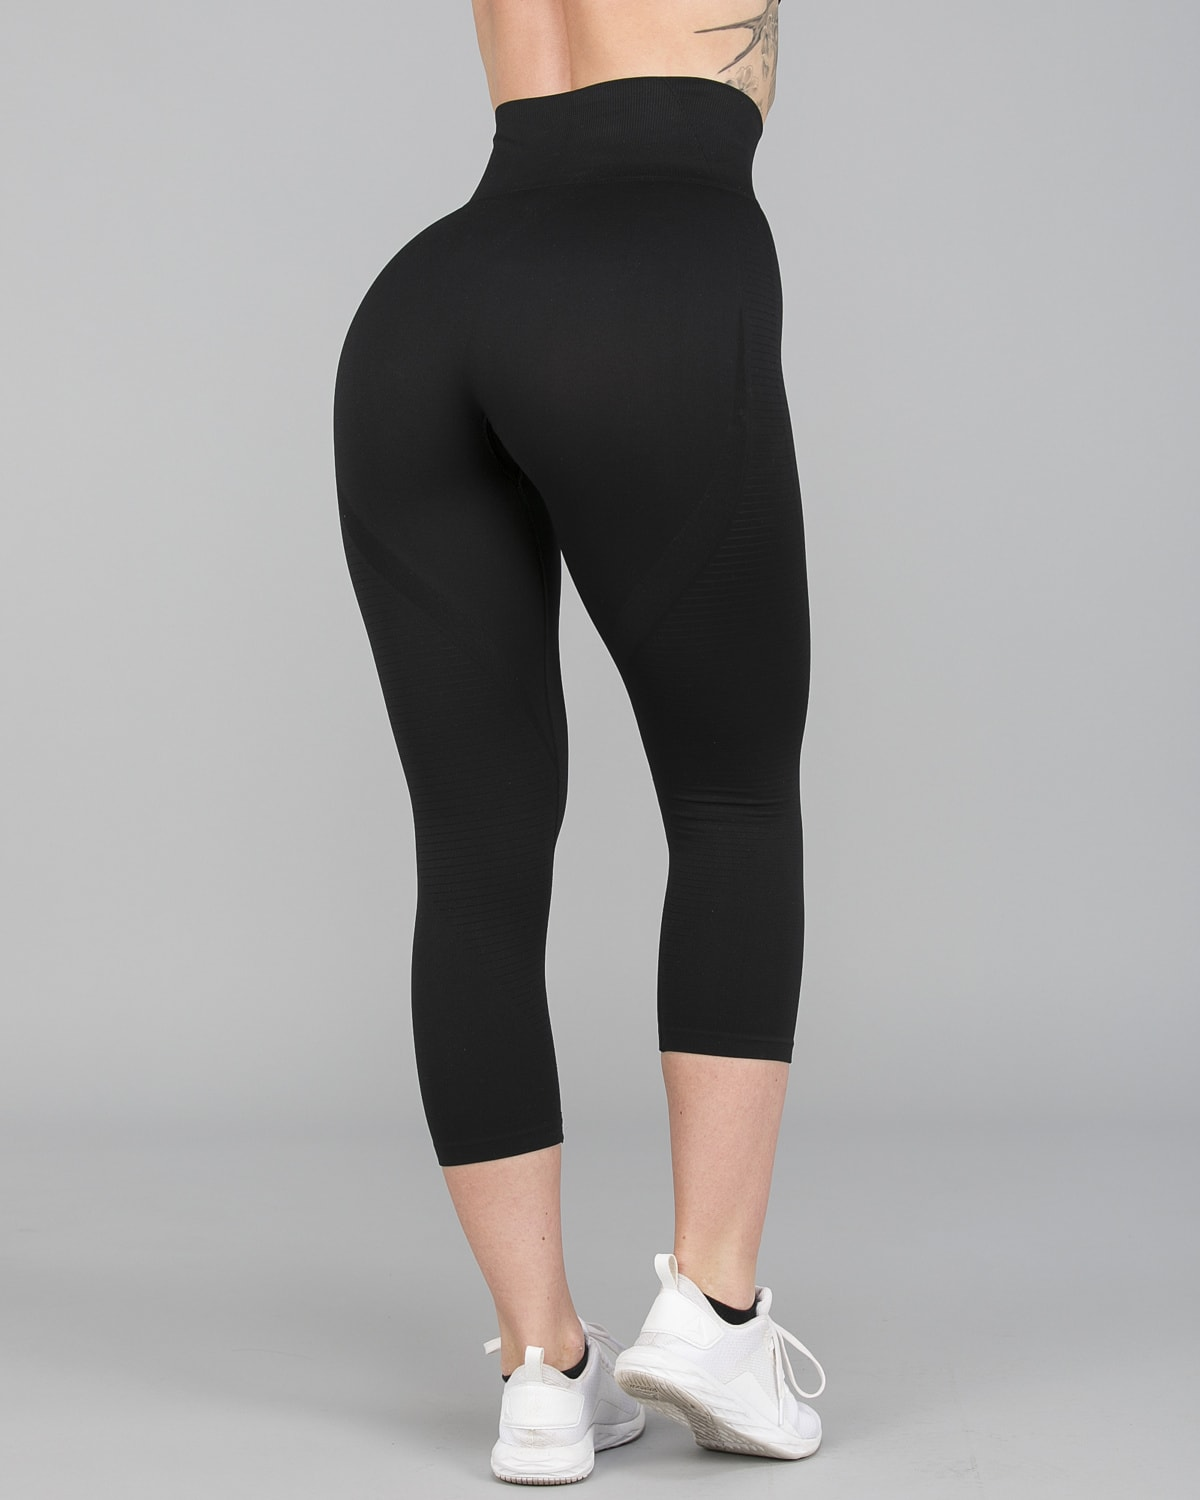 FAMME – Vortex Leggings 7:8 – Black10